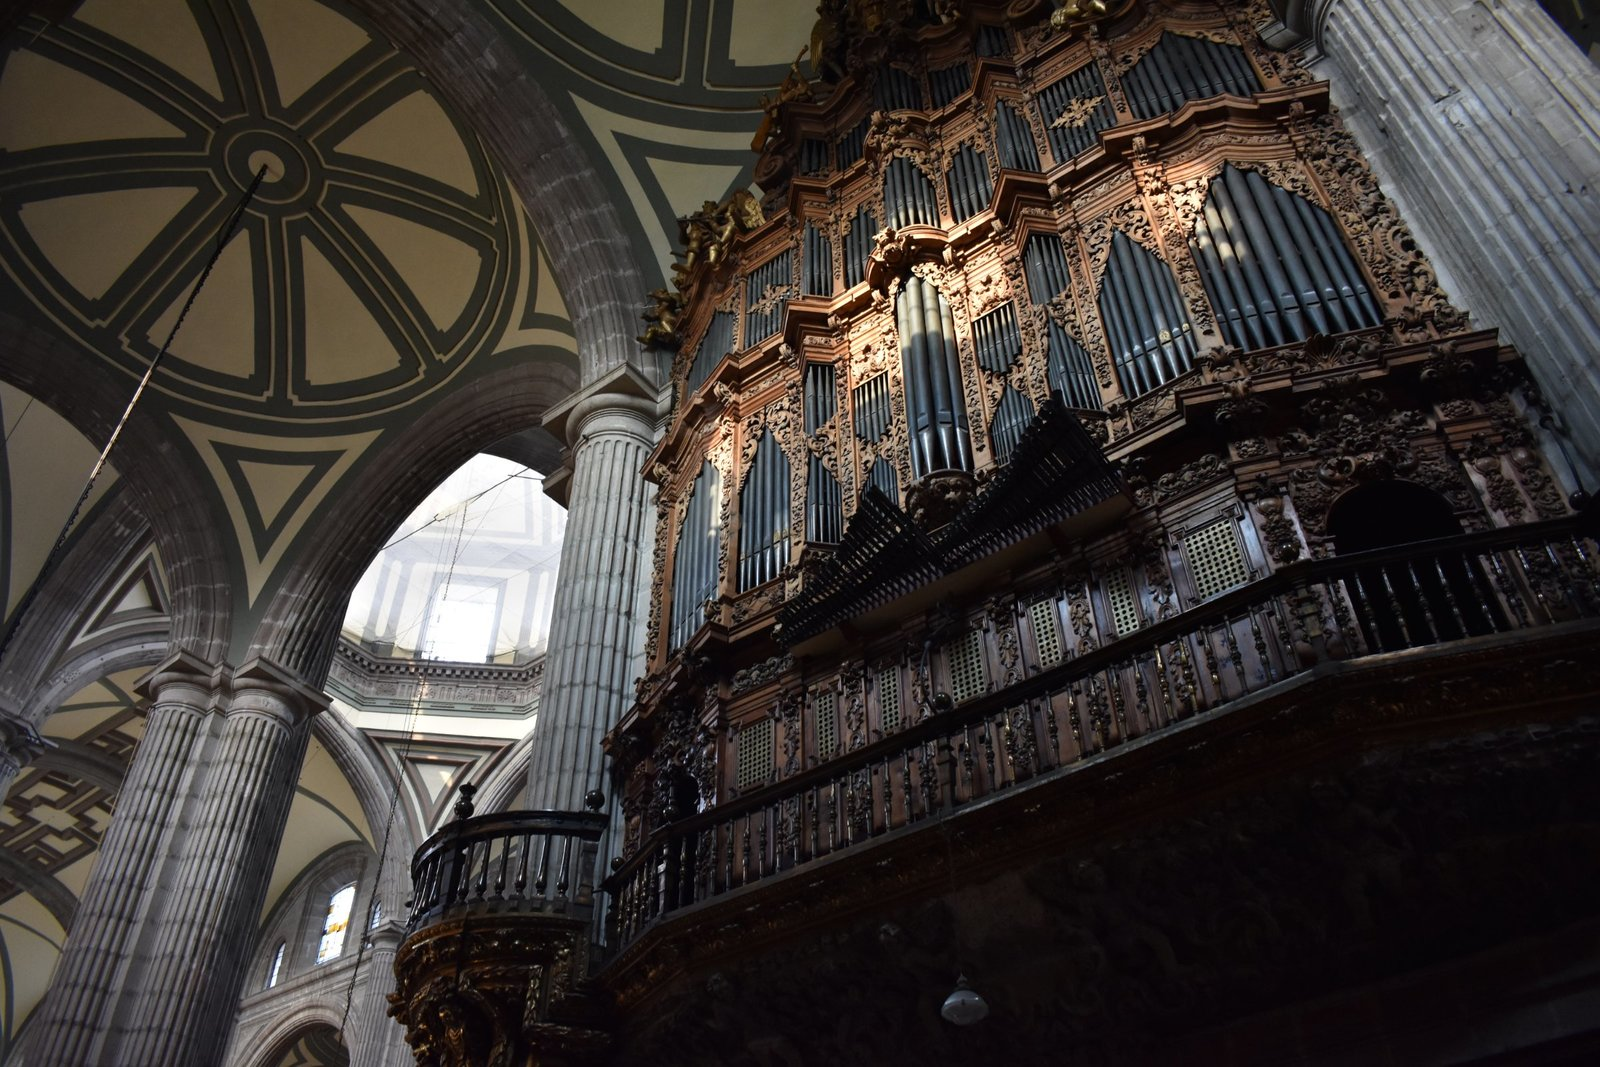 Image: The organ inside of the Metropolitan Cathedral in Mexico City, where Manuel de Zumaya was chapelmaster.